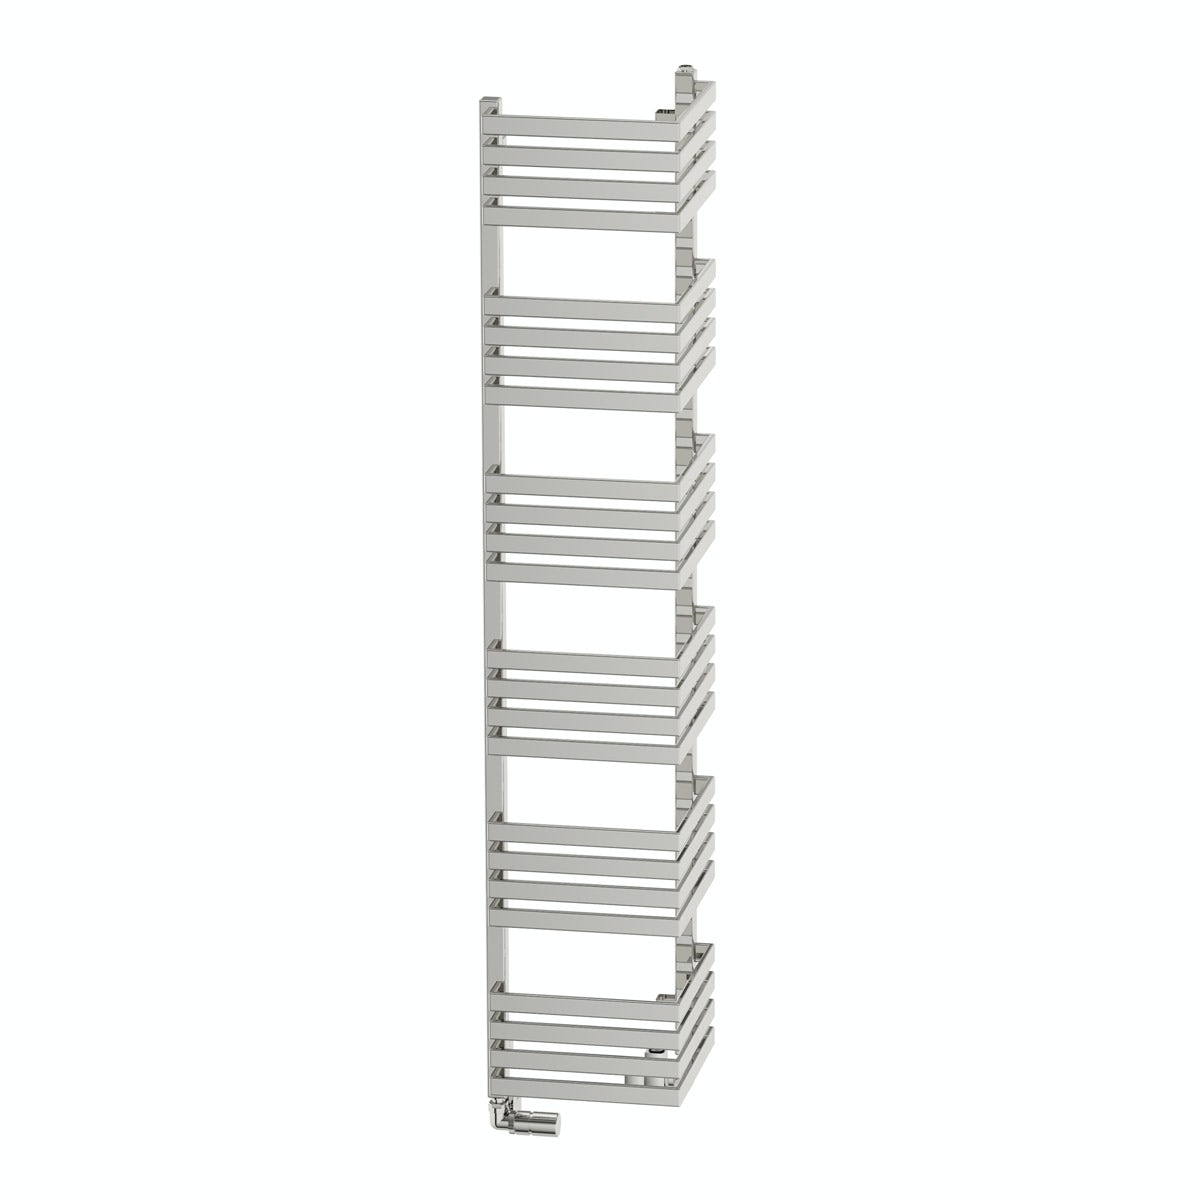 Terma Outcorner chrome effect heated towel rail 1545 x 300